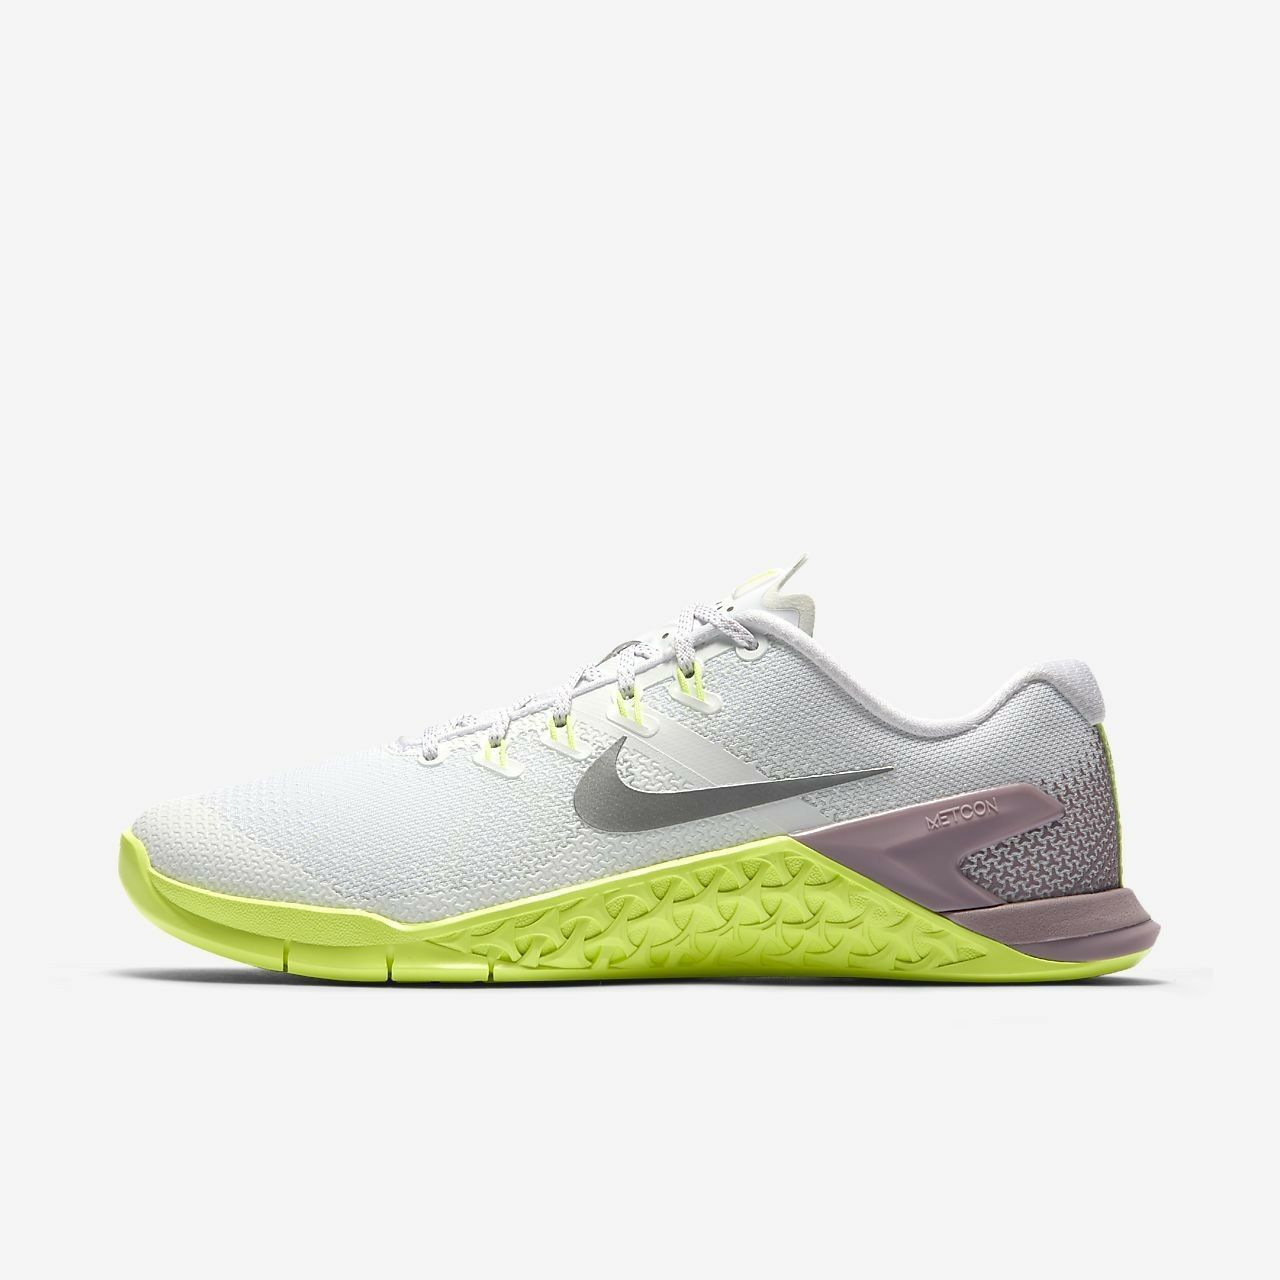 new product d6d47 aa7de MUJER Nike Metcon 4 Zapatos Blanco Plata and 50 similar items